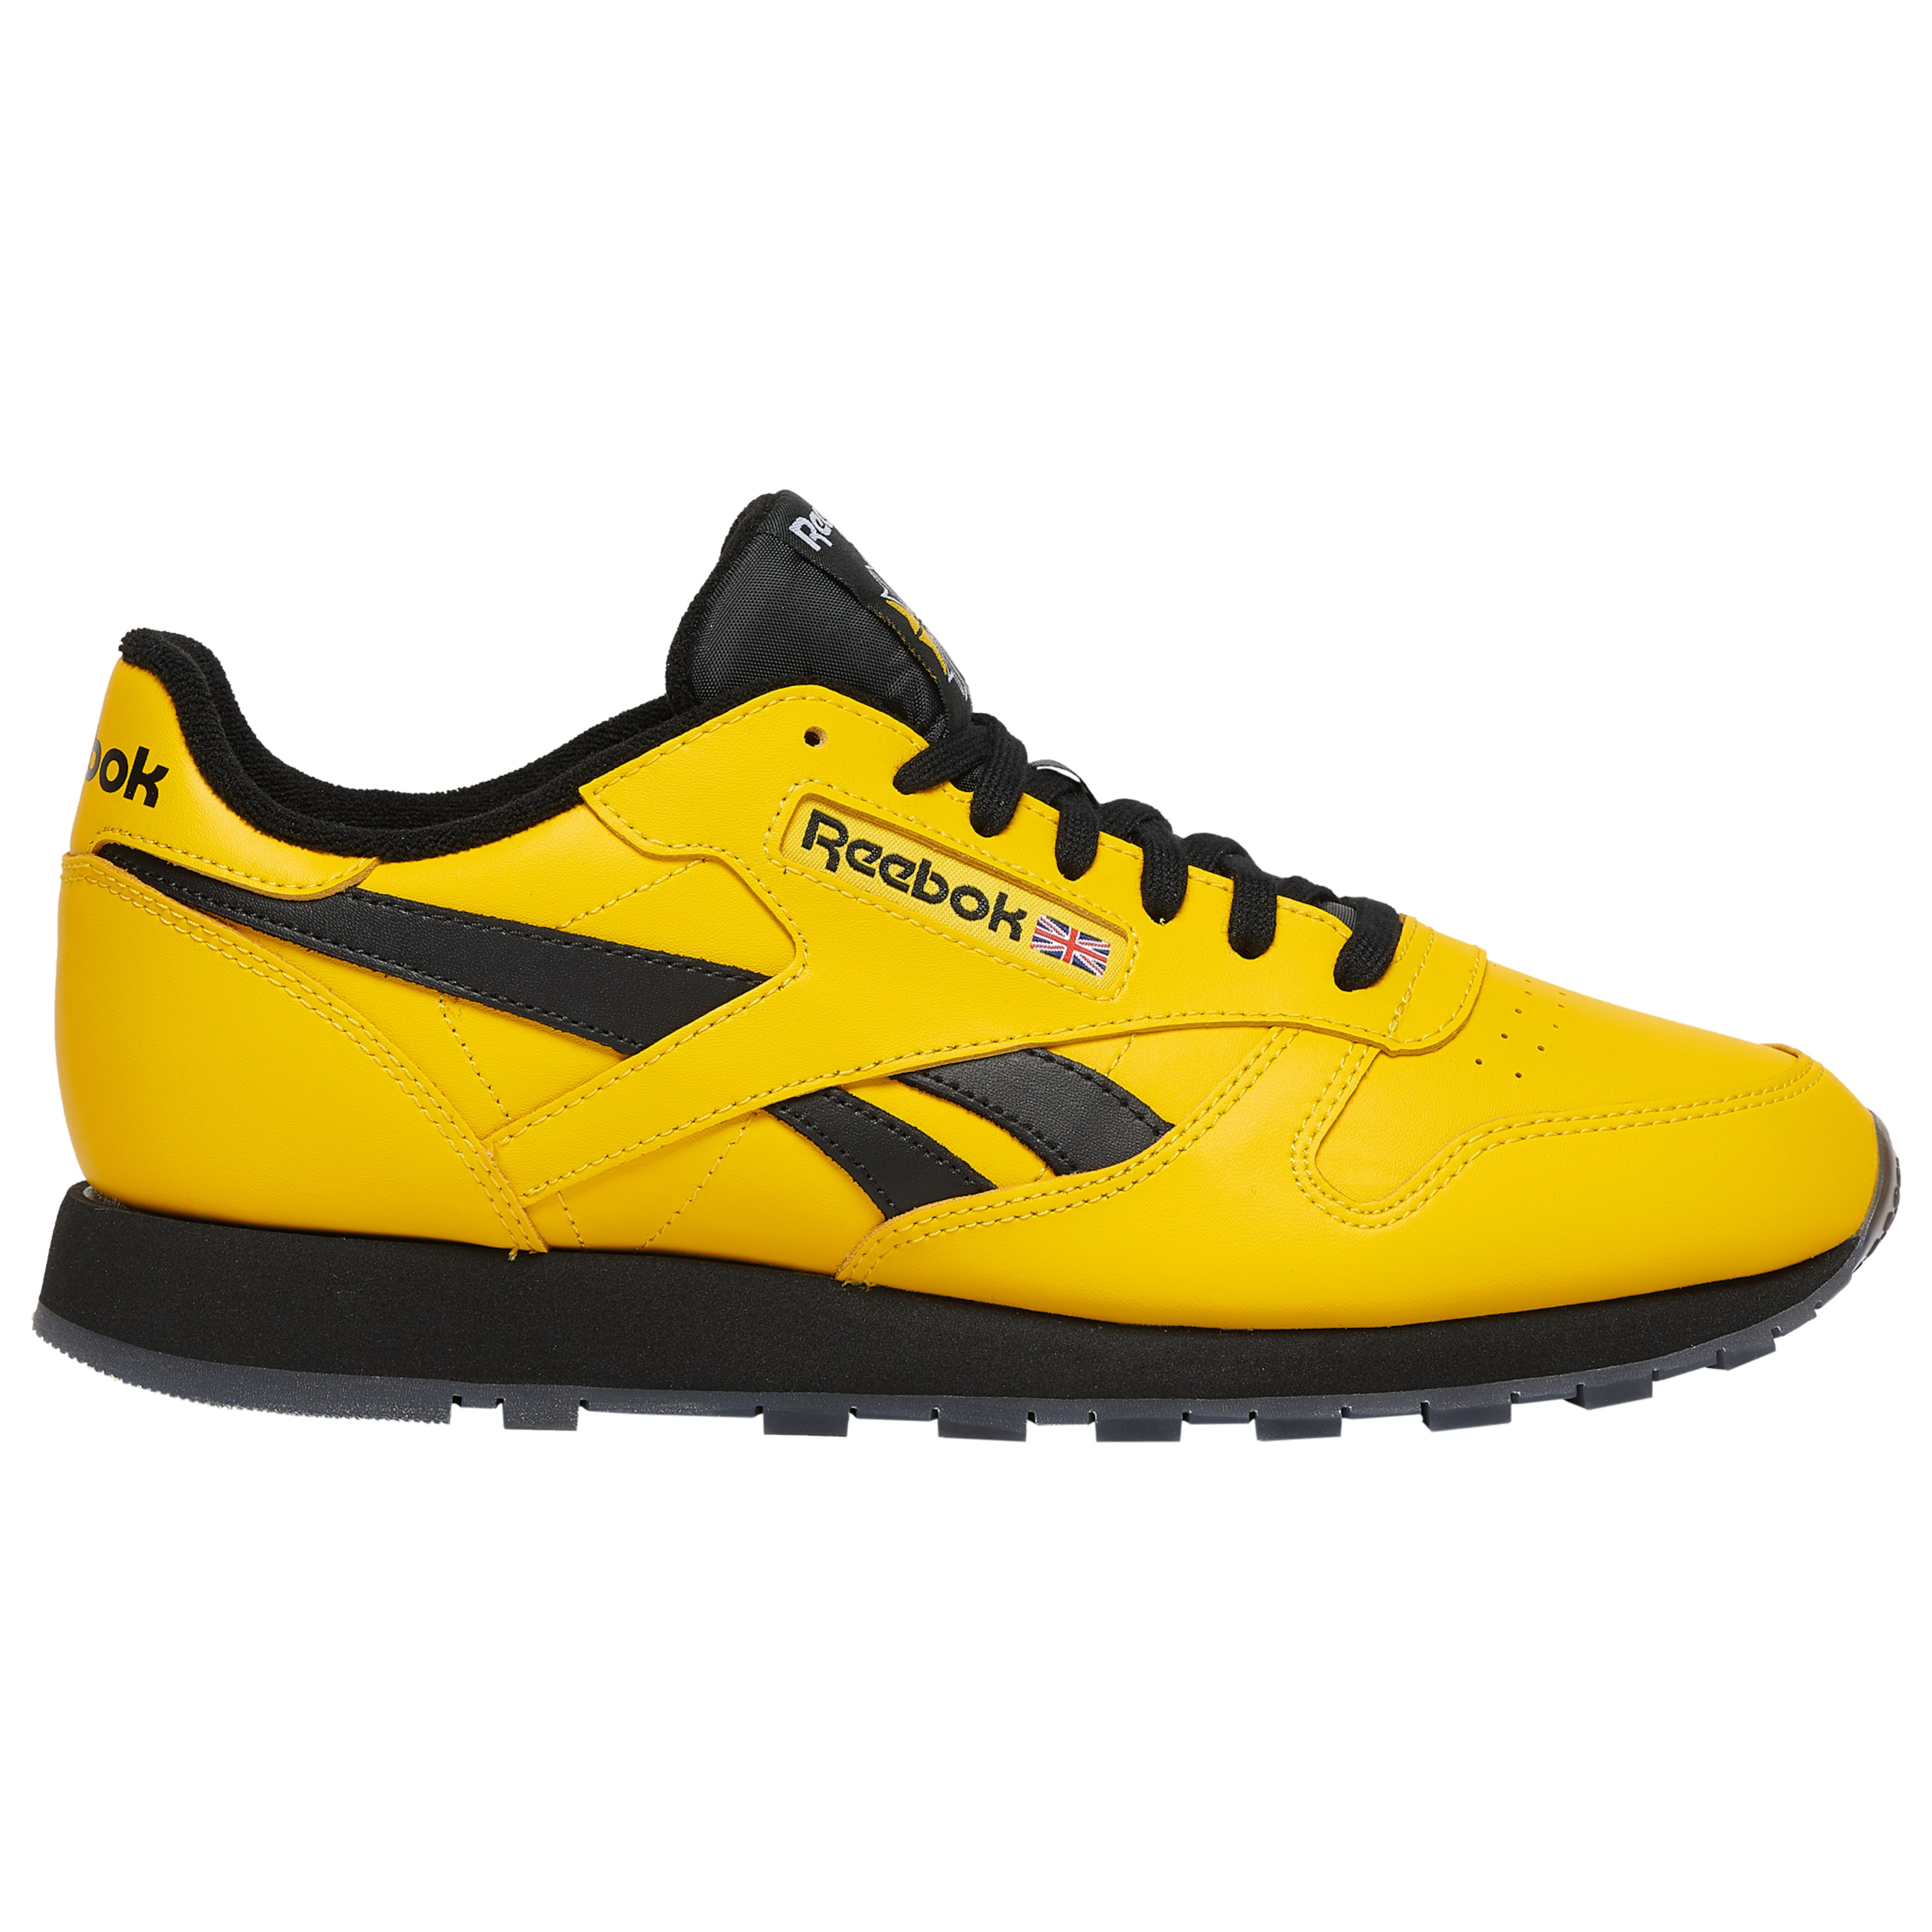 Reebok Classic Leather - Running Shoes